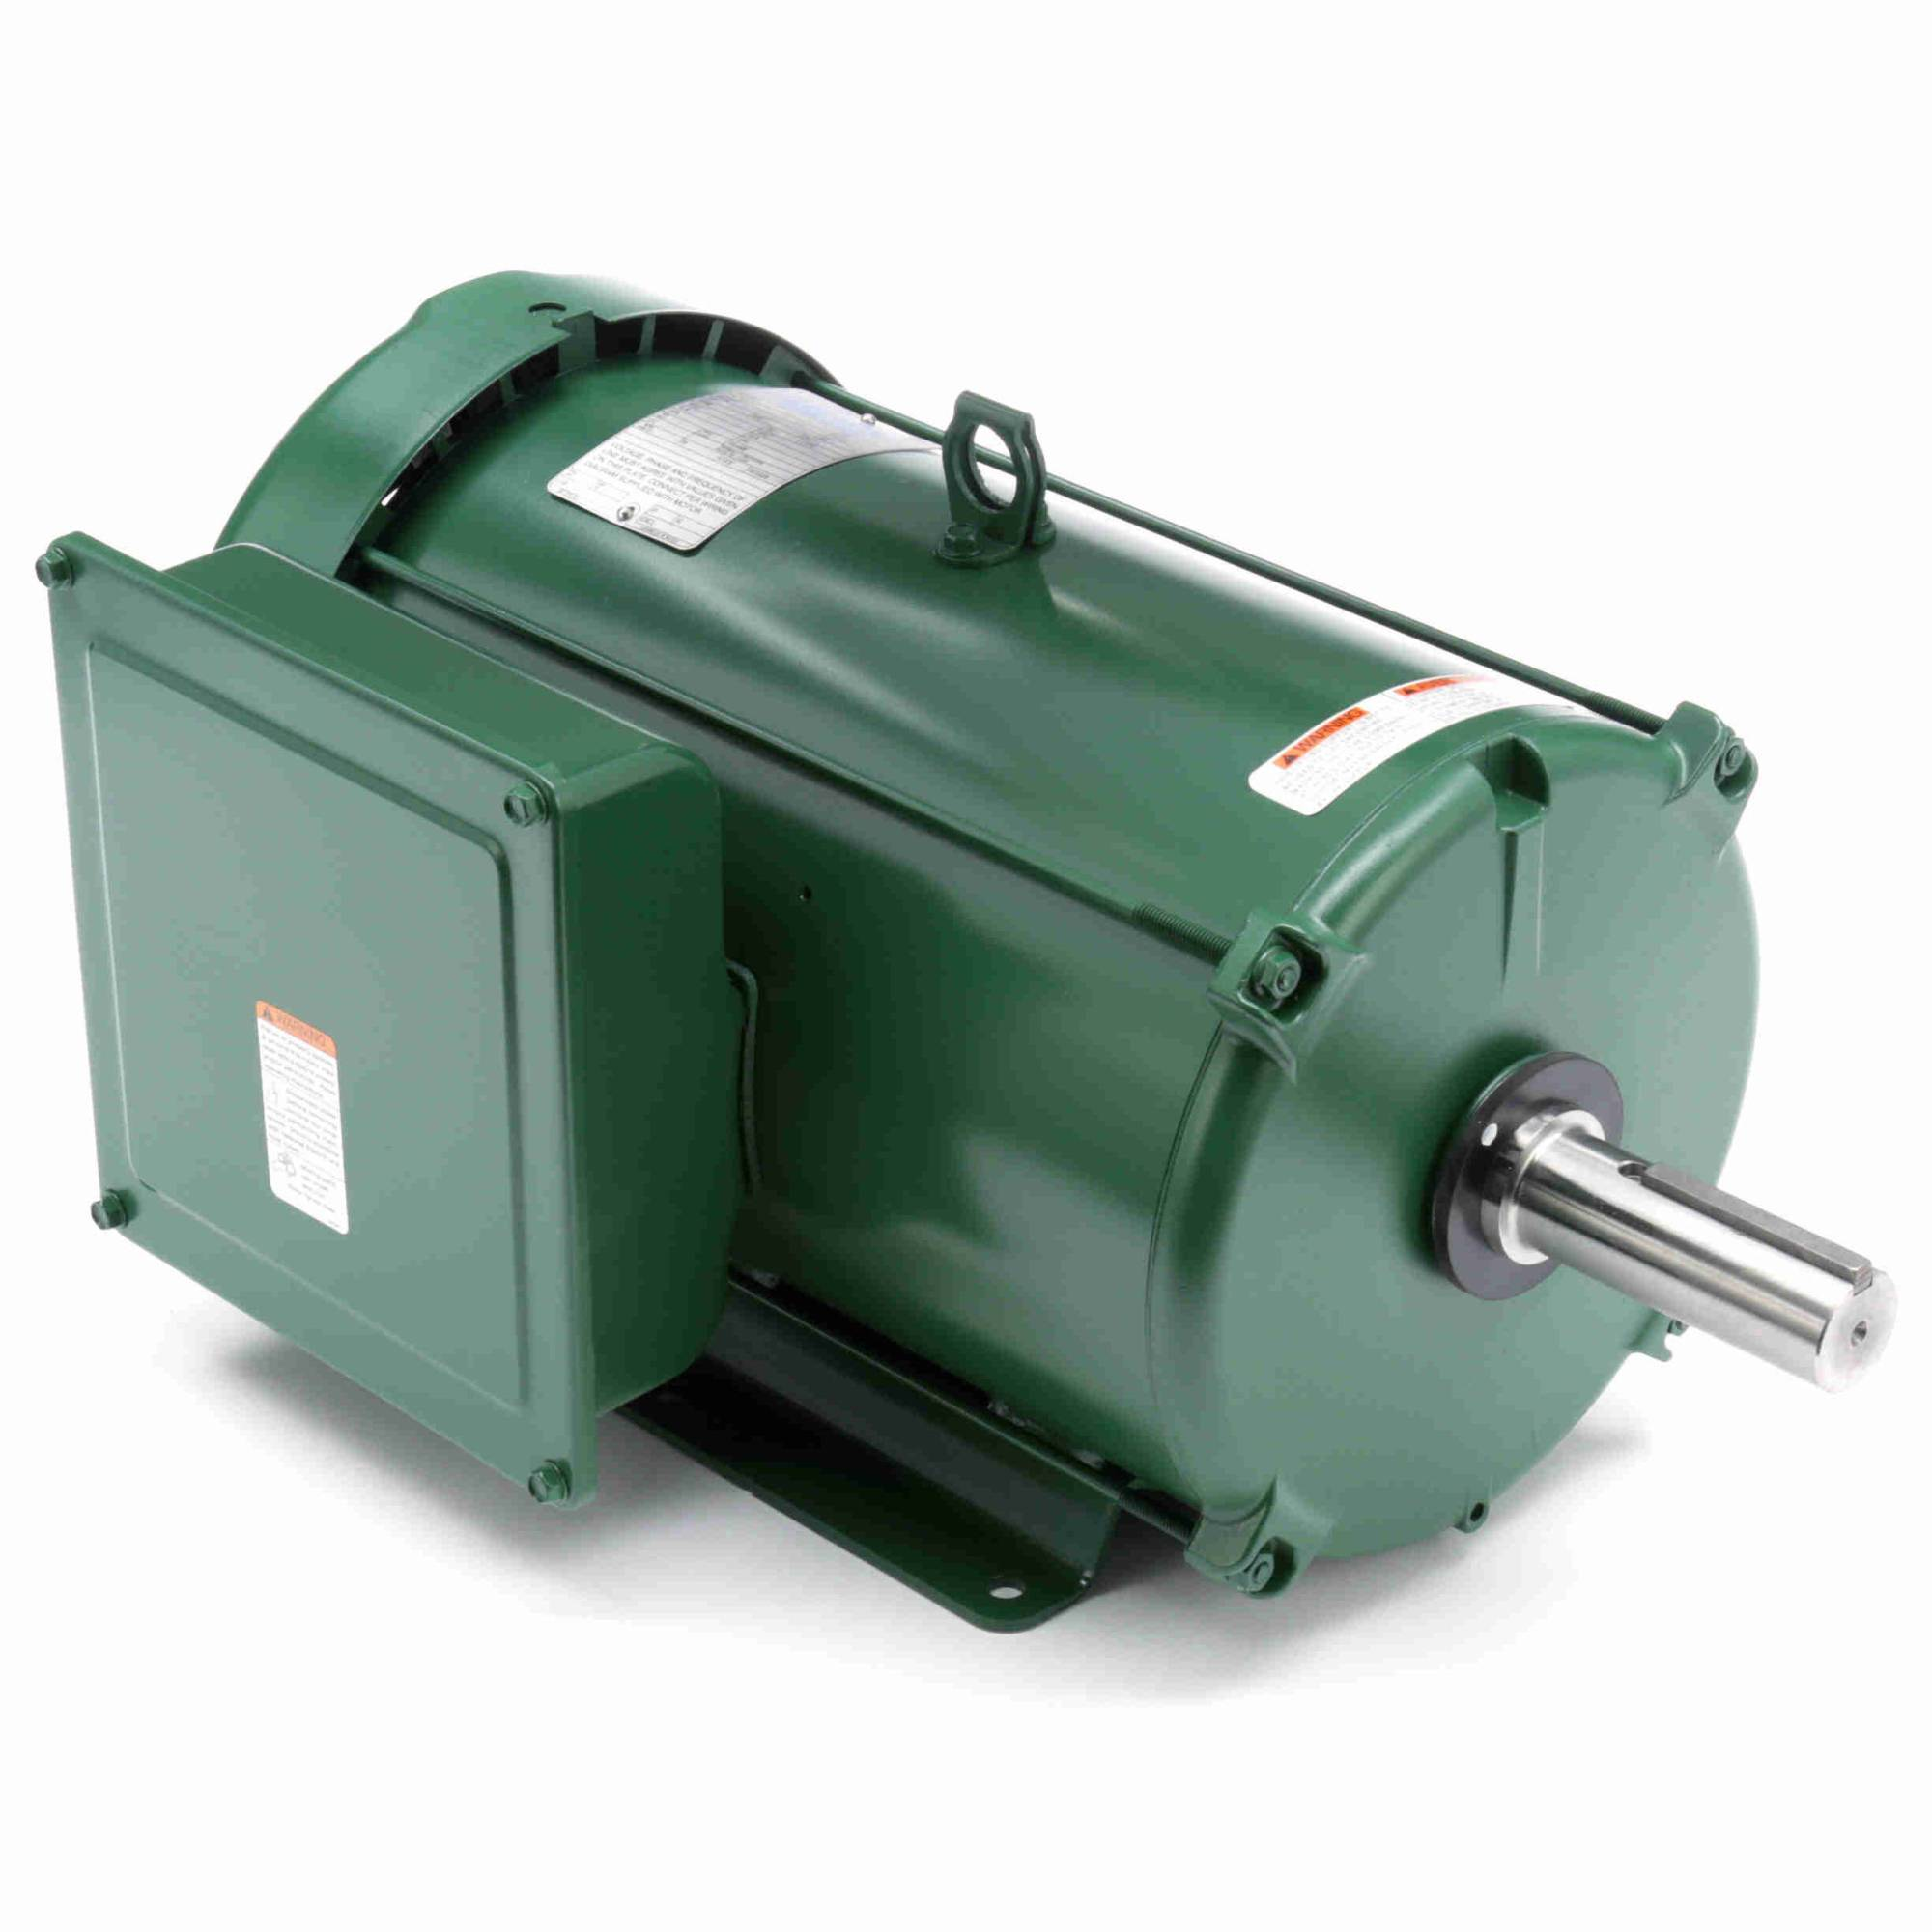 hight resolution of 141311 00 10hp leeson grain dryer cent fan motor 1